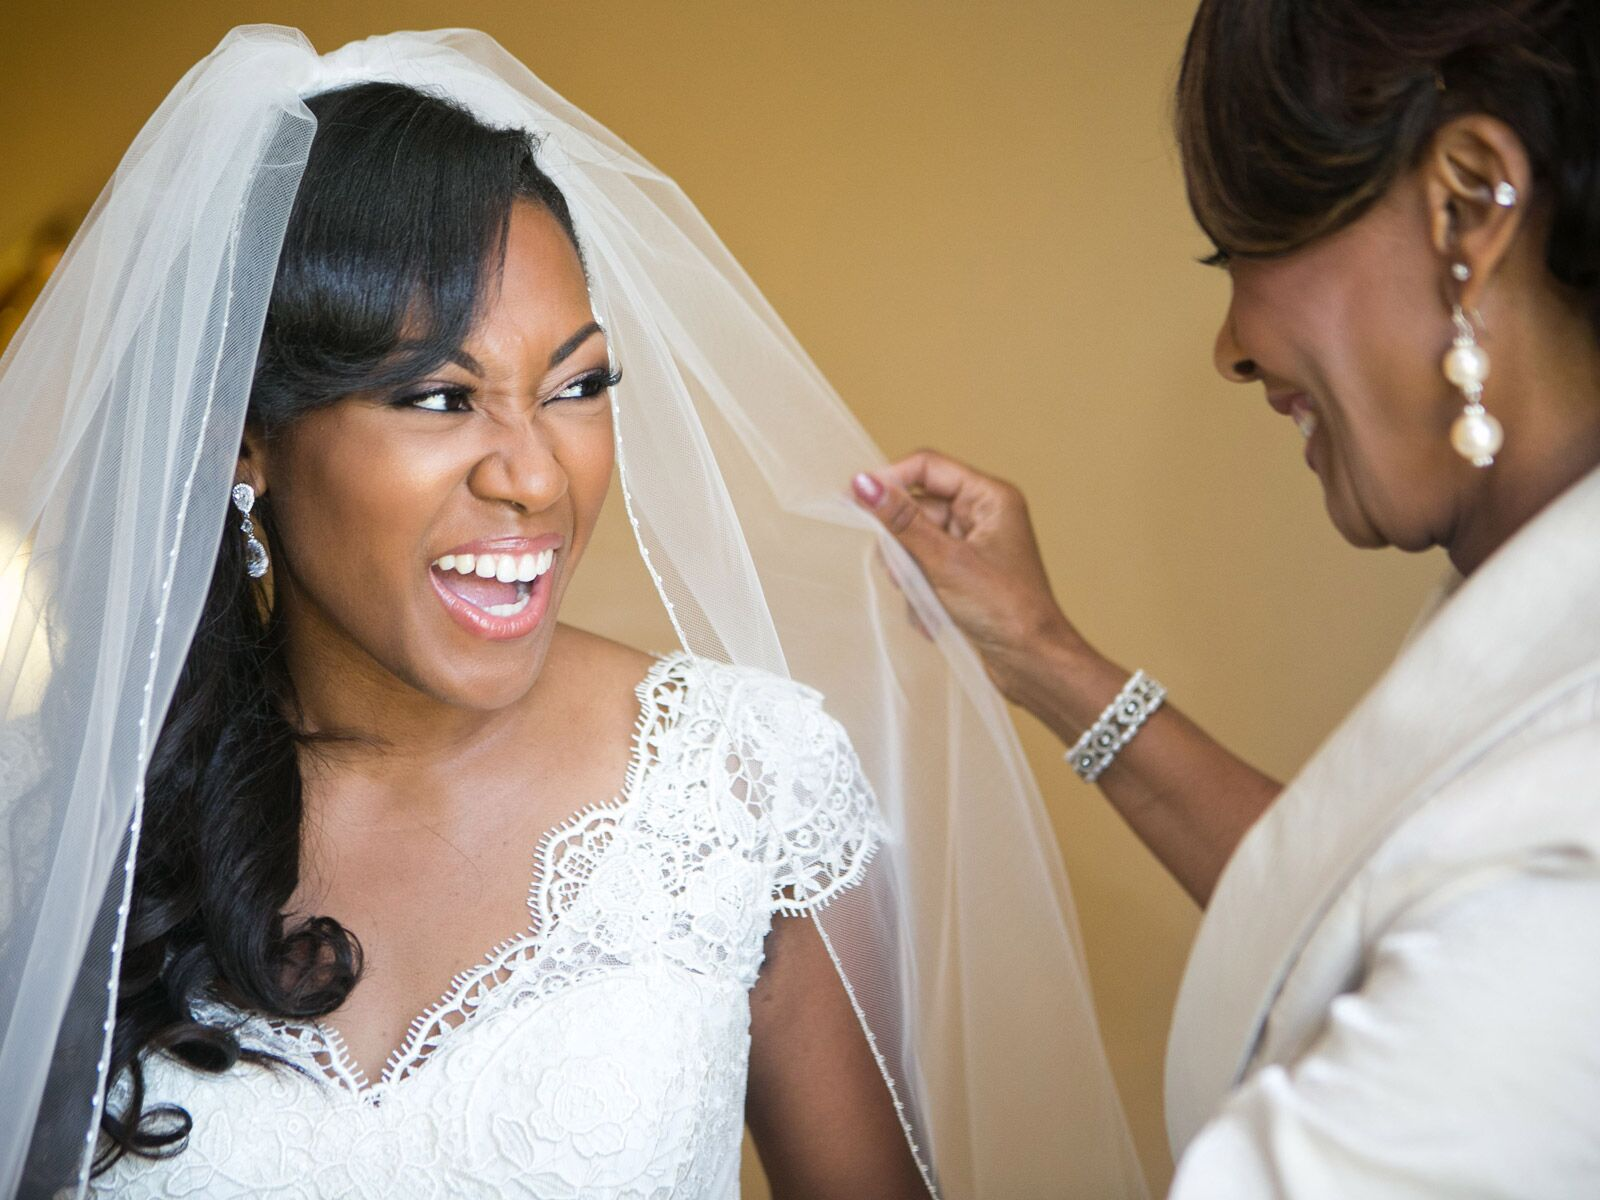 Wedding Veil Tips and Trends: How to Choose Your Wedding Veil